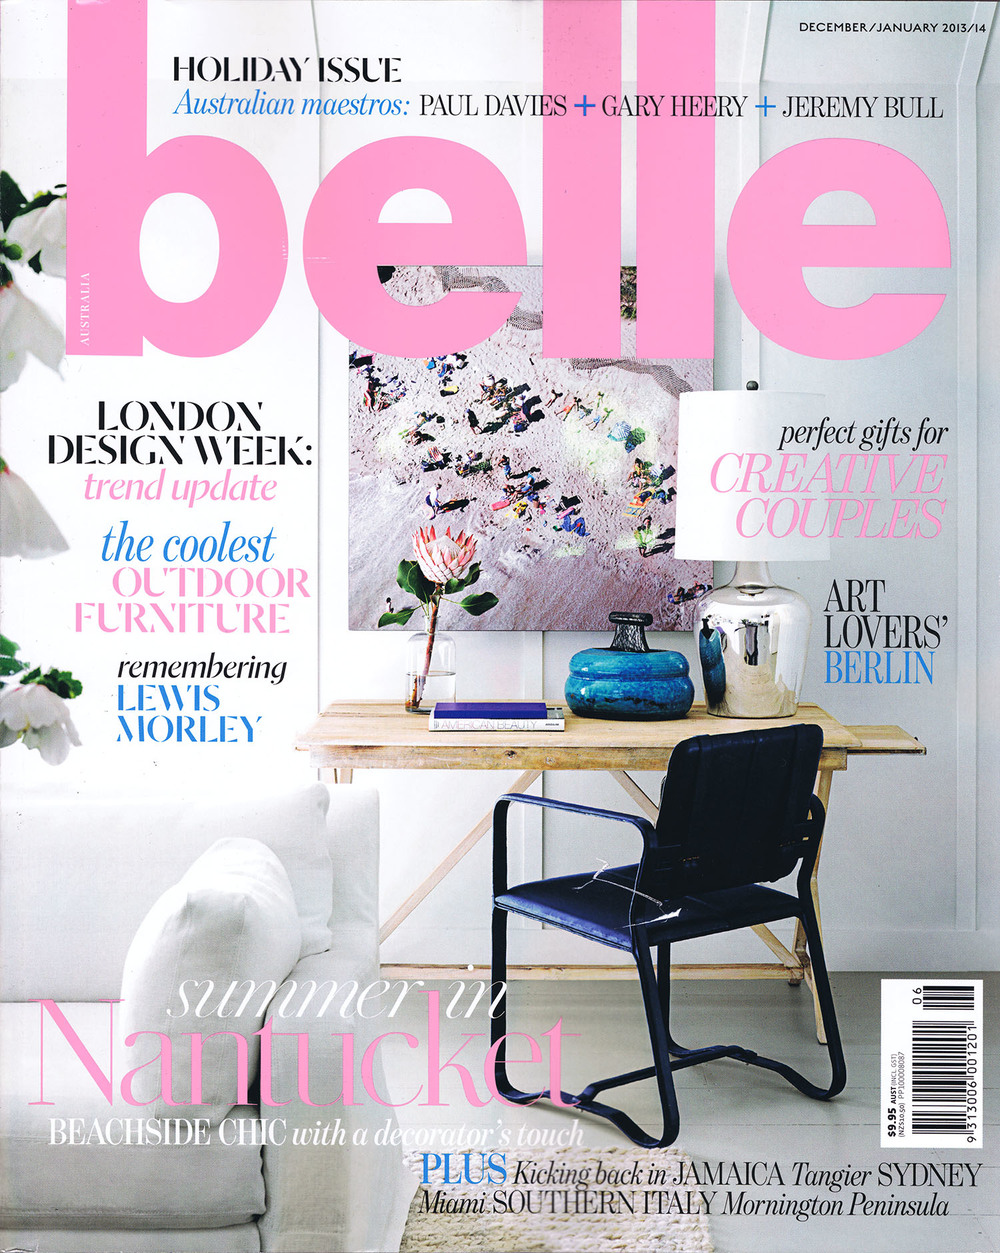 Belle-December_January-2013-Cover.jpg